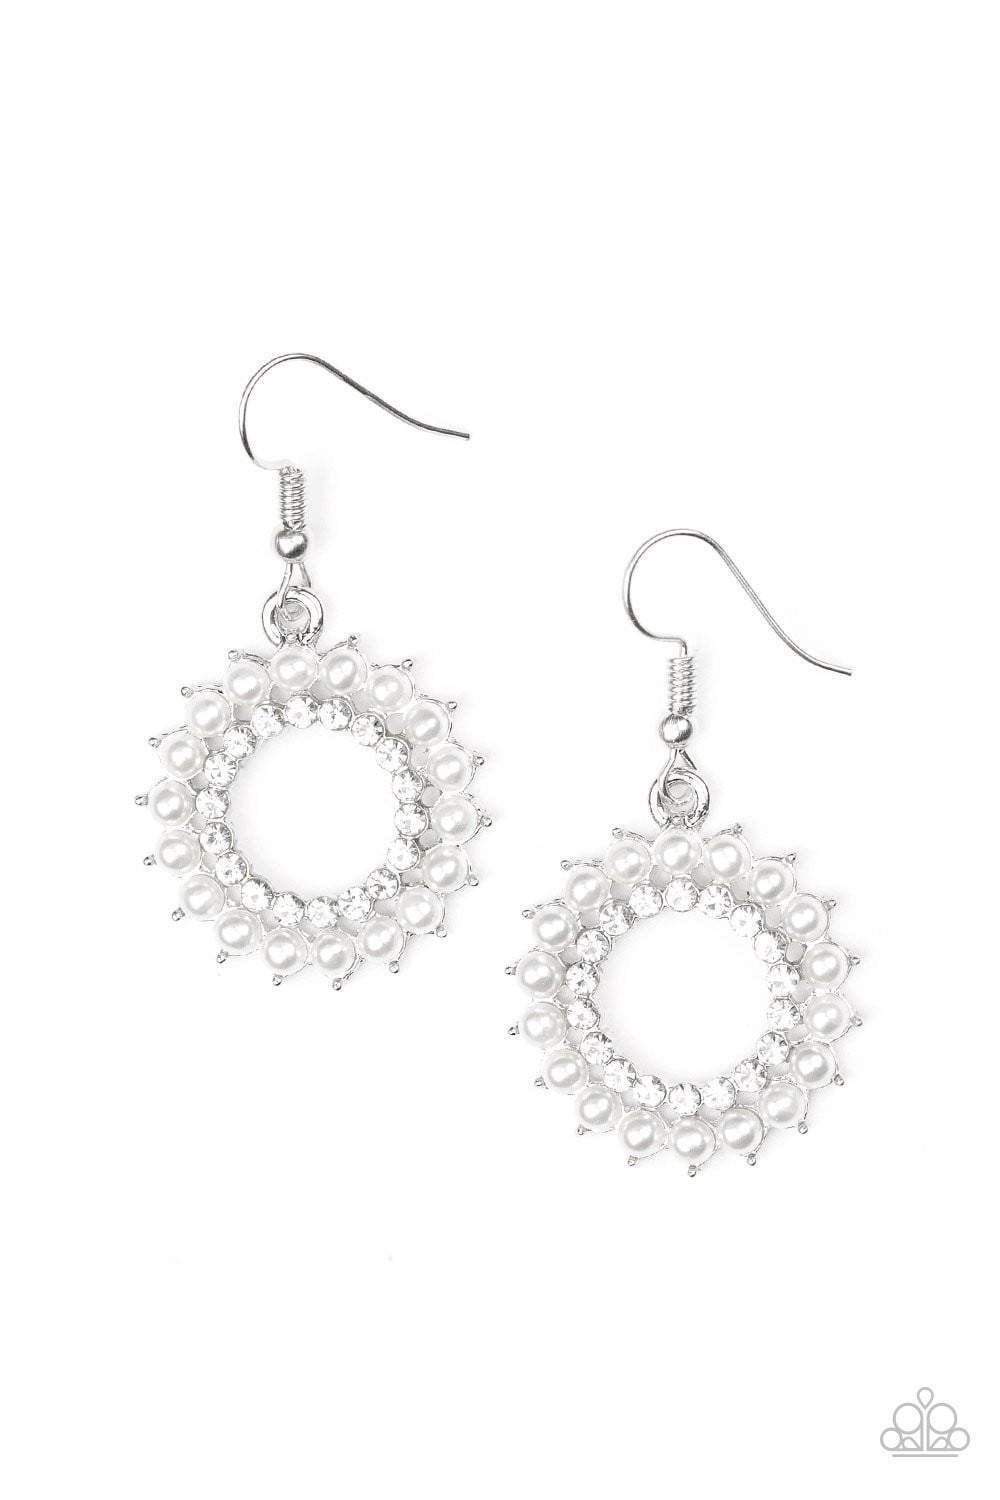 Paparazzi Wreathed In Radiance - White Pearl White Rhinestone Center Hoop Earrings - Bling It On Online